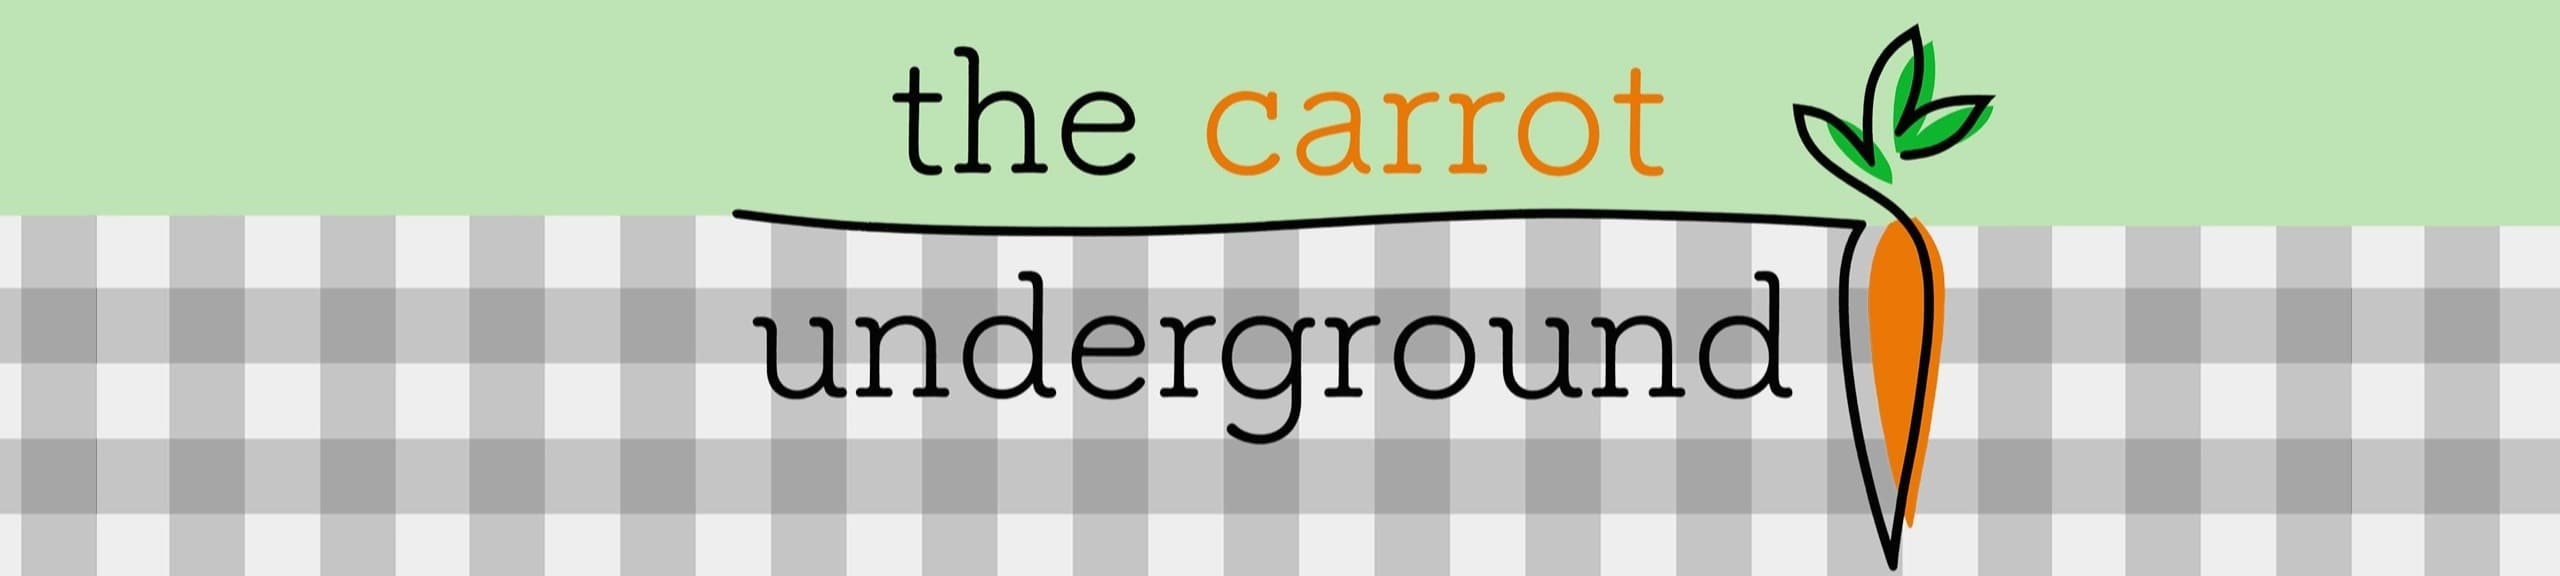 The Carrot Underground